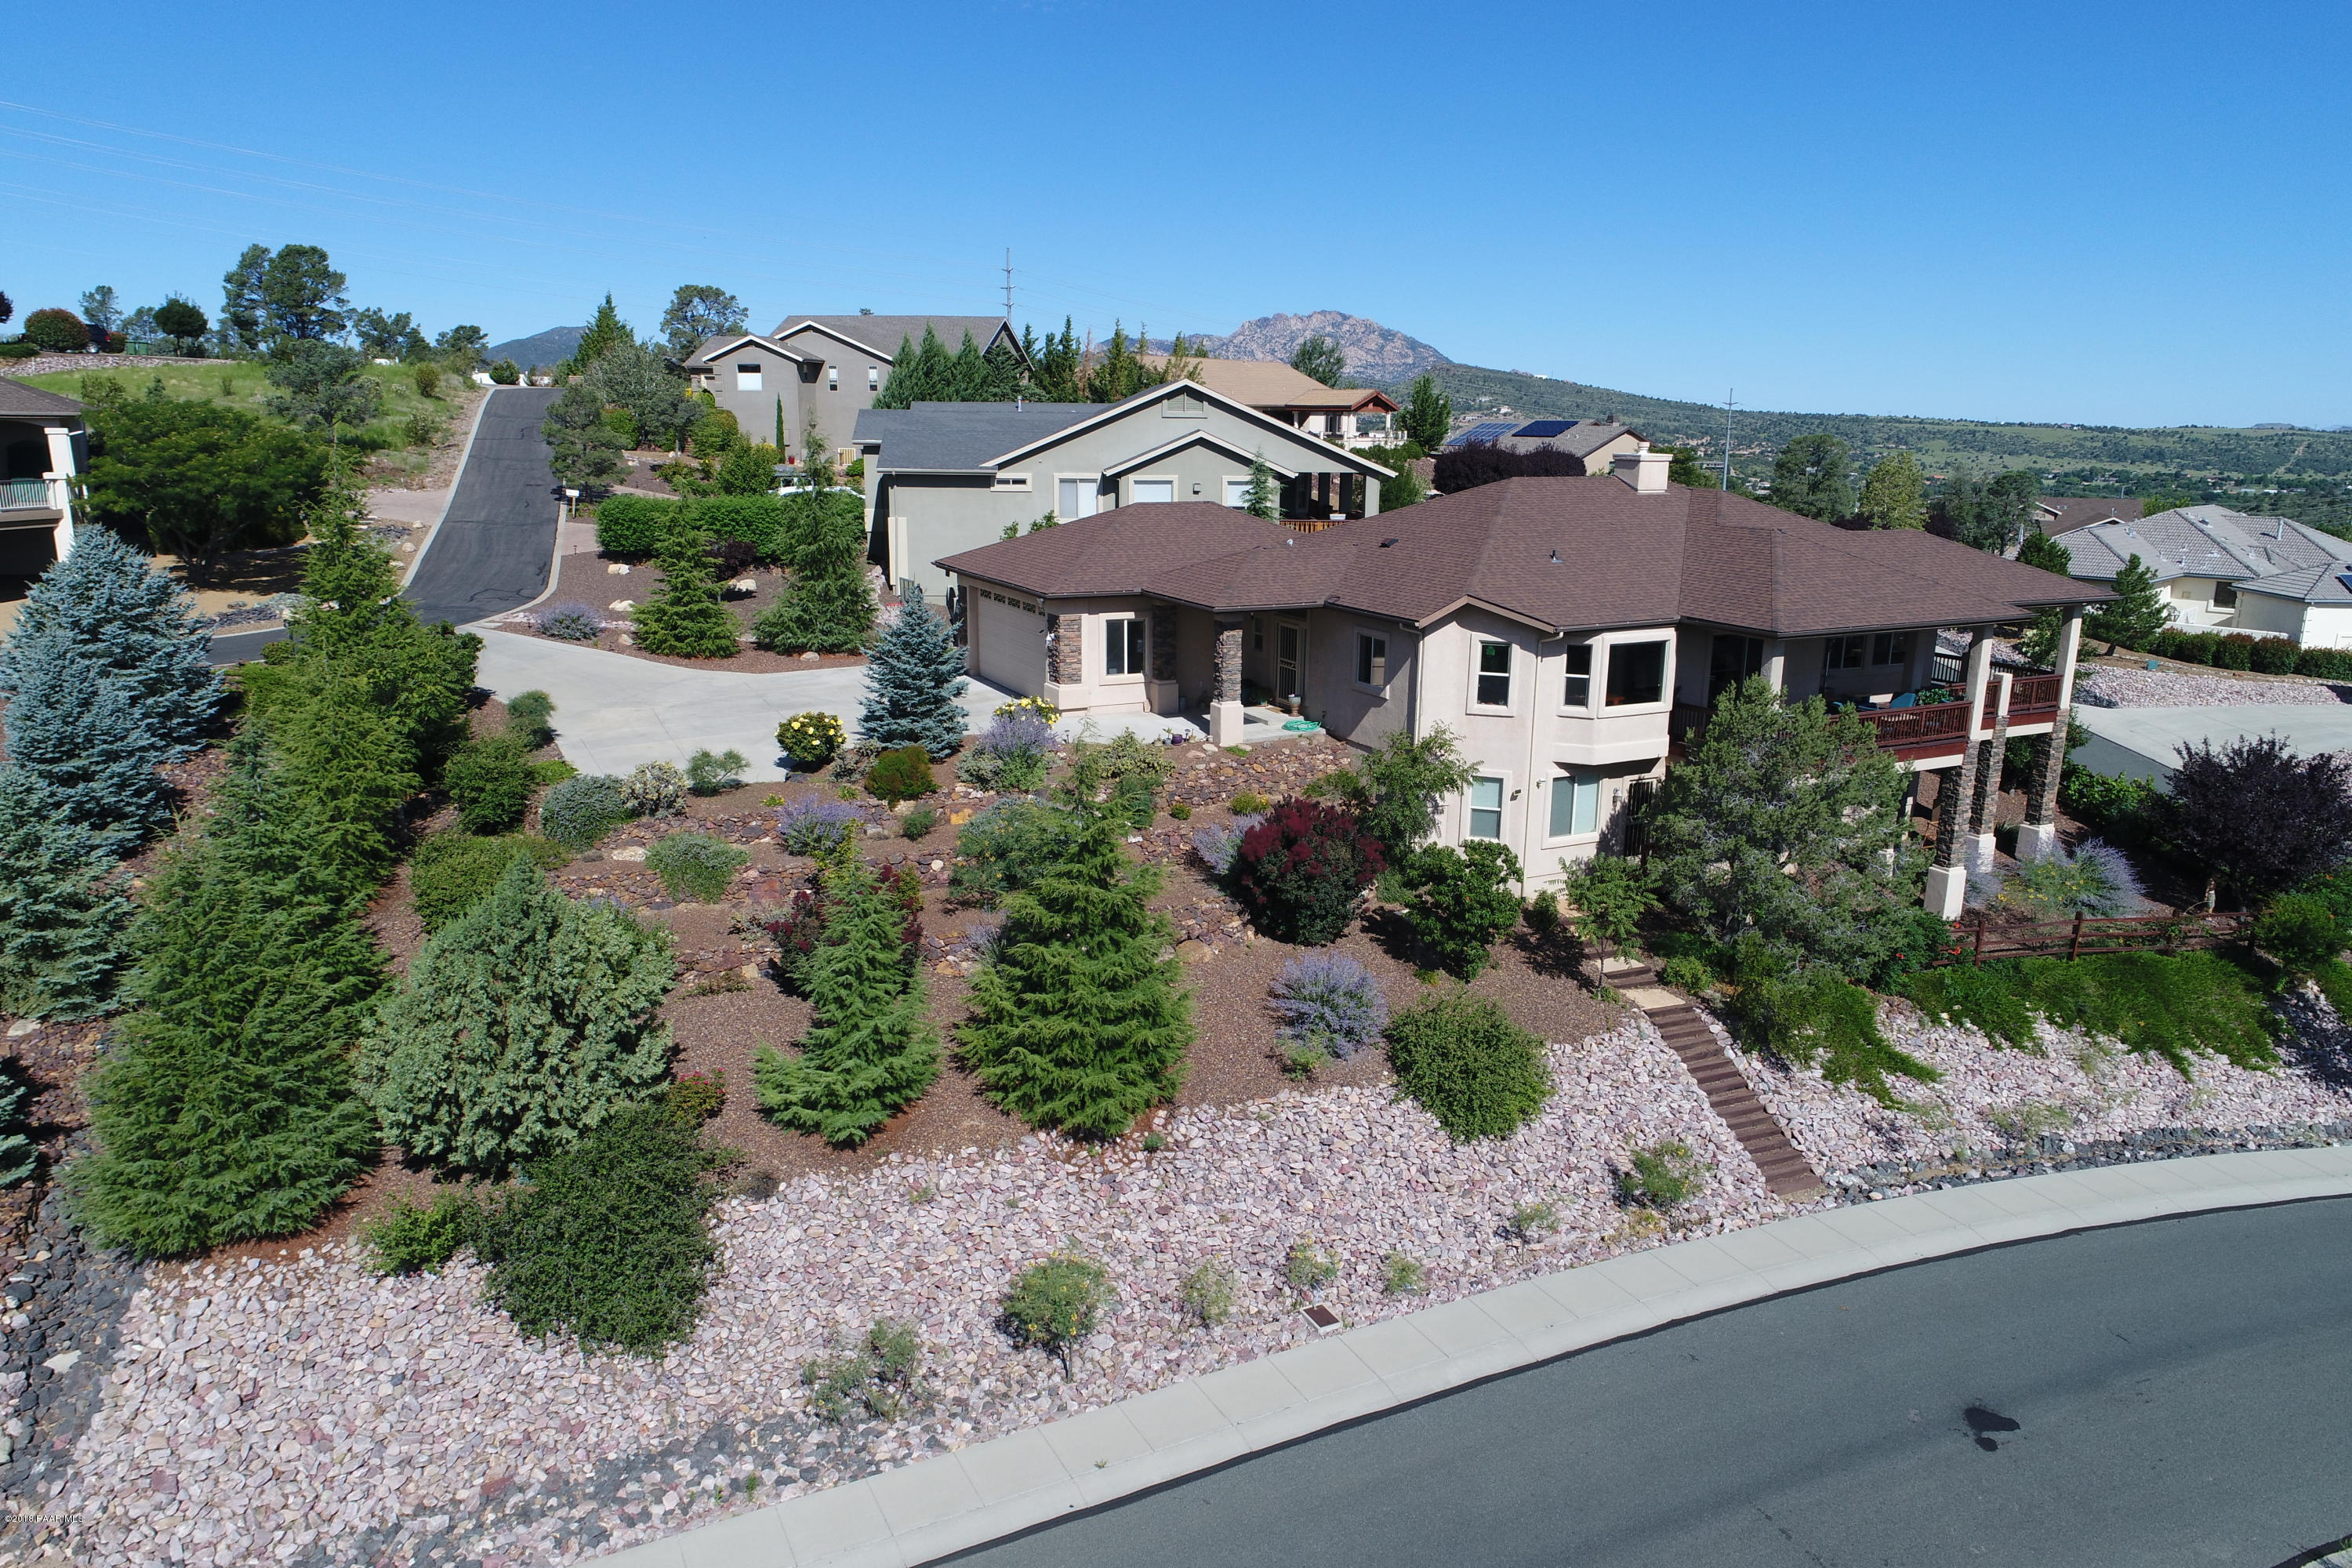 Photo of 241 Mountain Myrtle, Prescott, AZ 86301